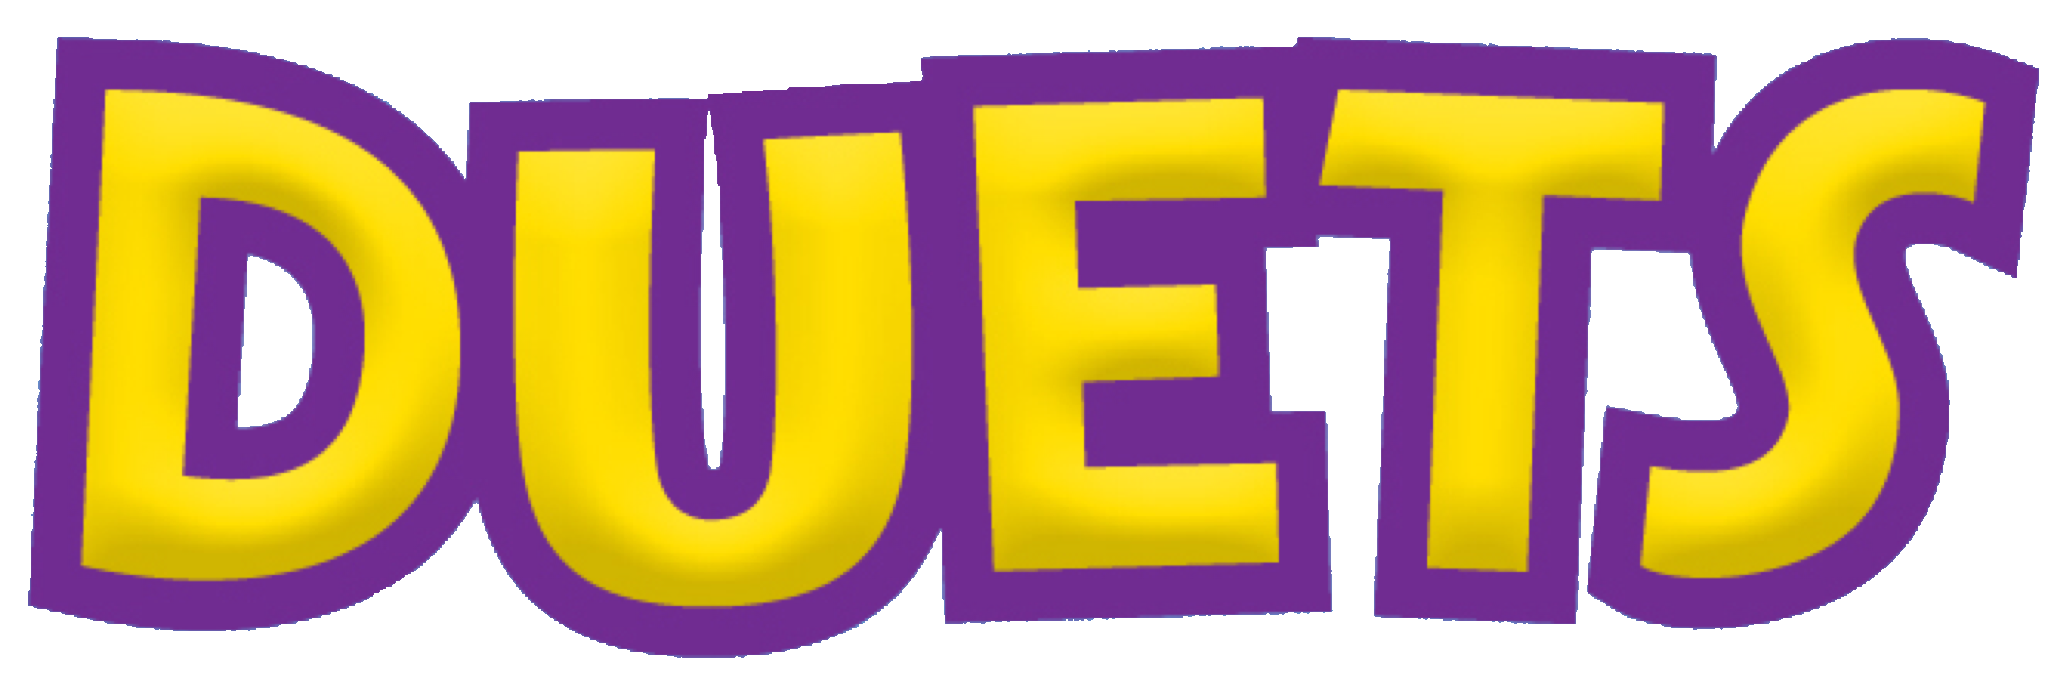 Duets (The Wiggles)